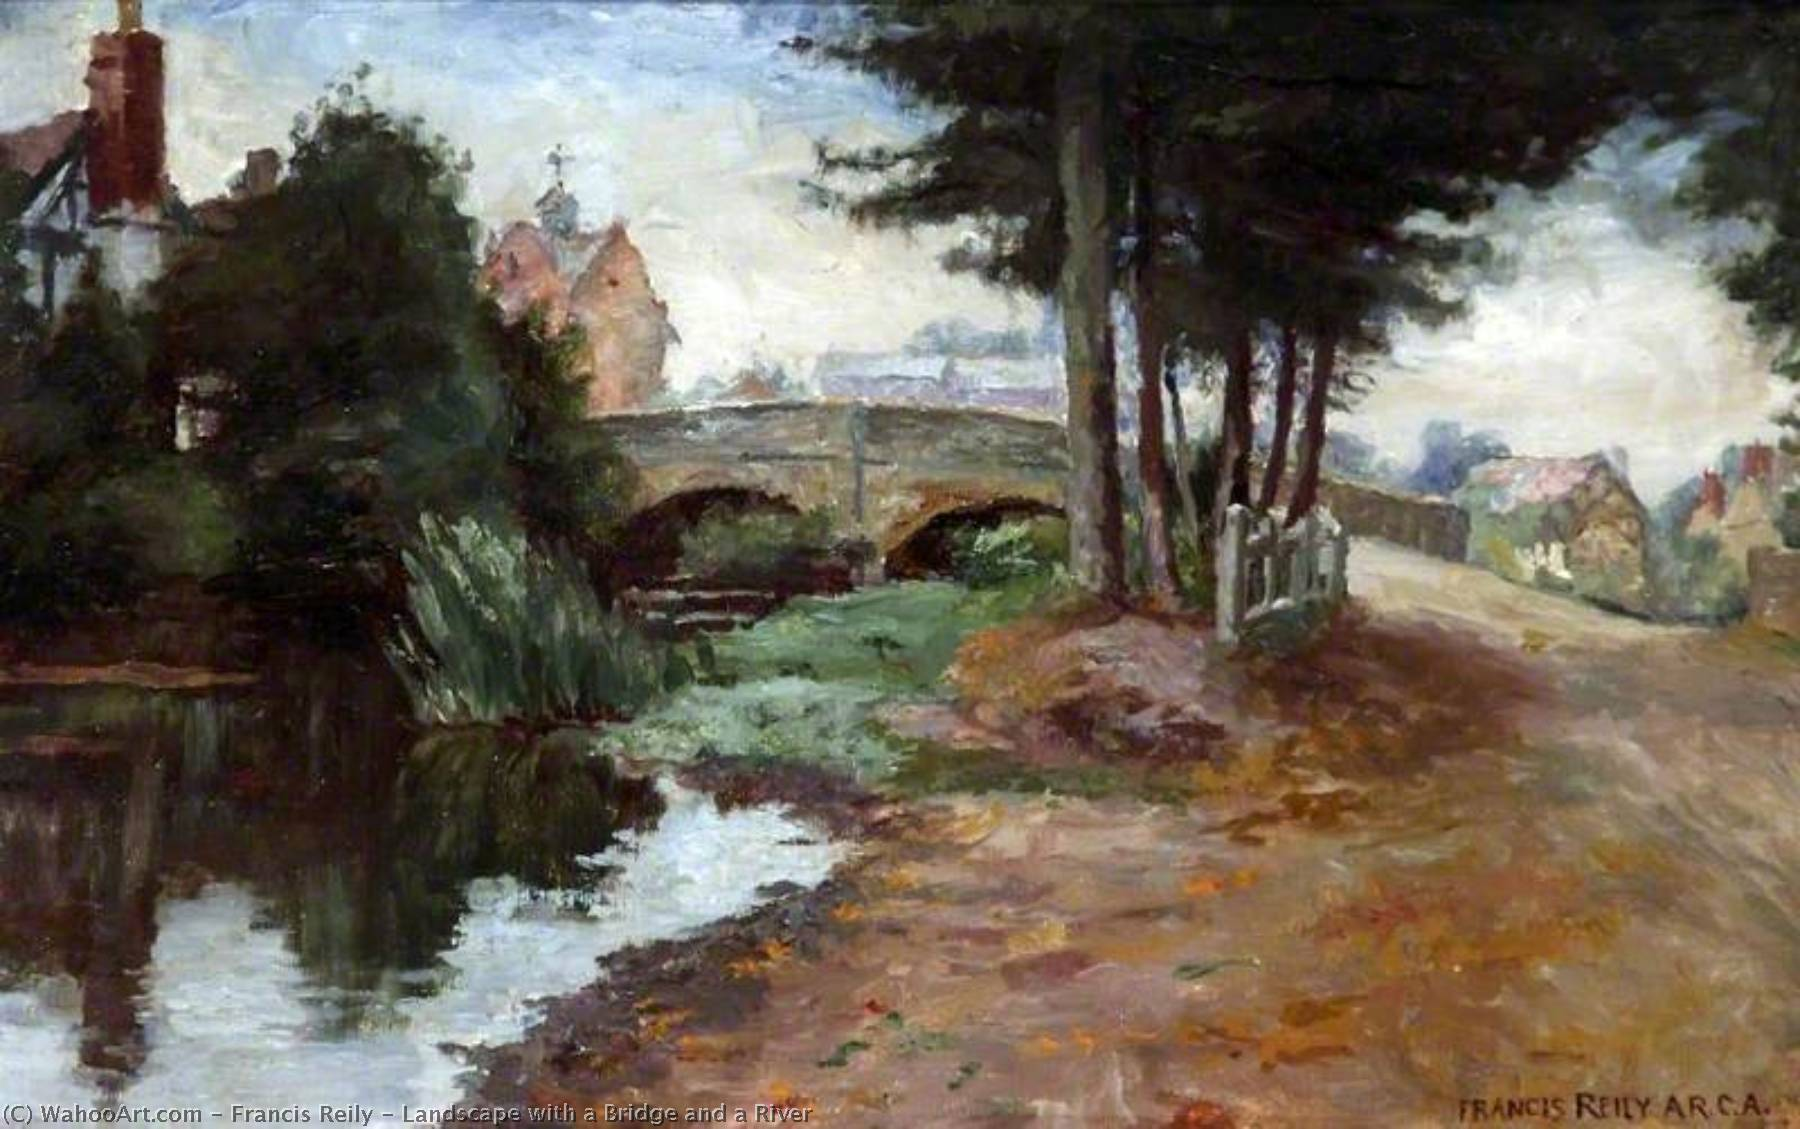 Landscape with a Bridge and a River, Oil by Francis Reily